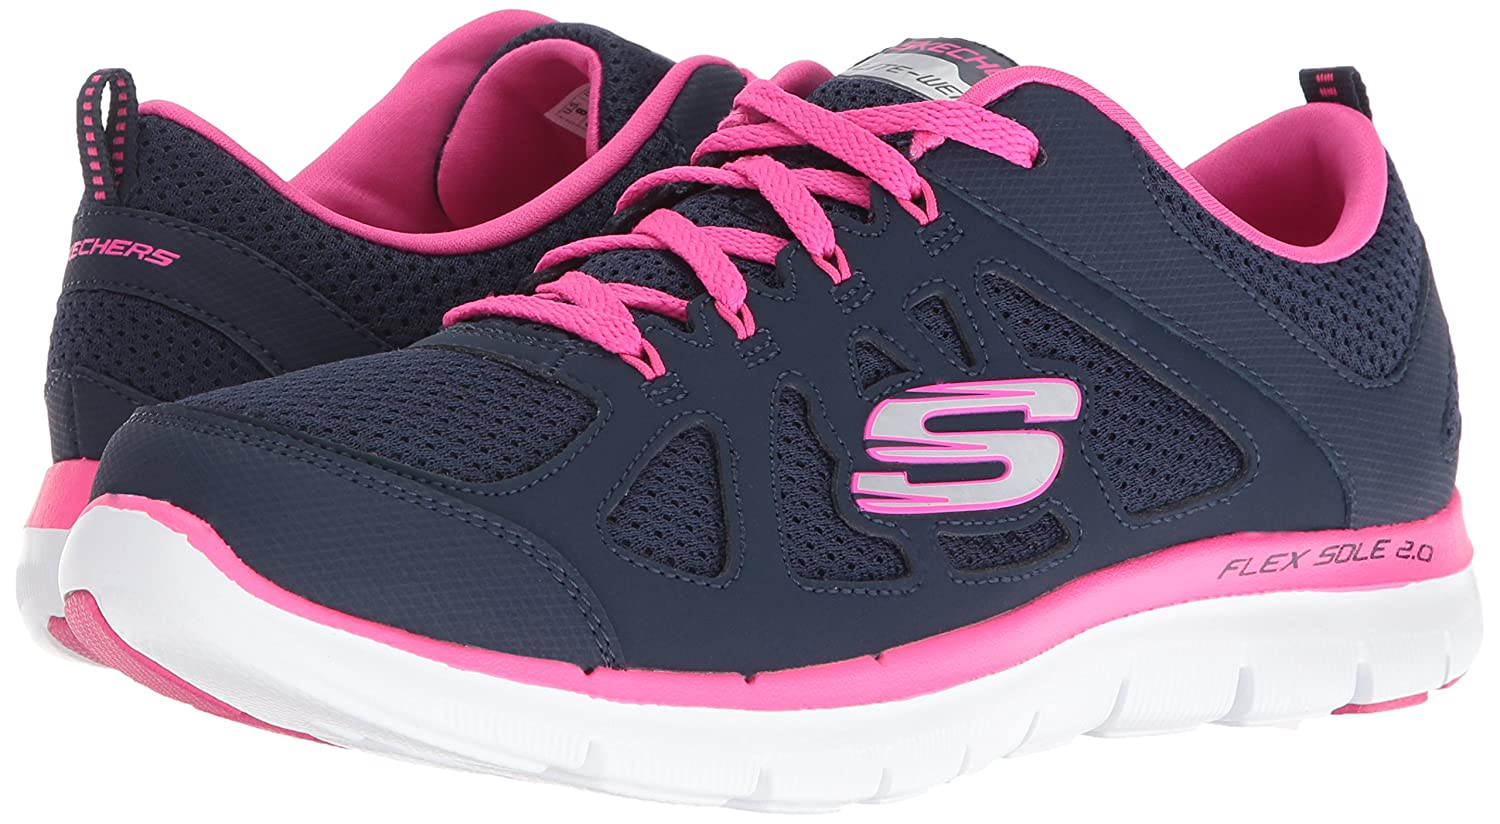 Skechers Women's Flex Appeal 2.0 Simplistic Sneakers